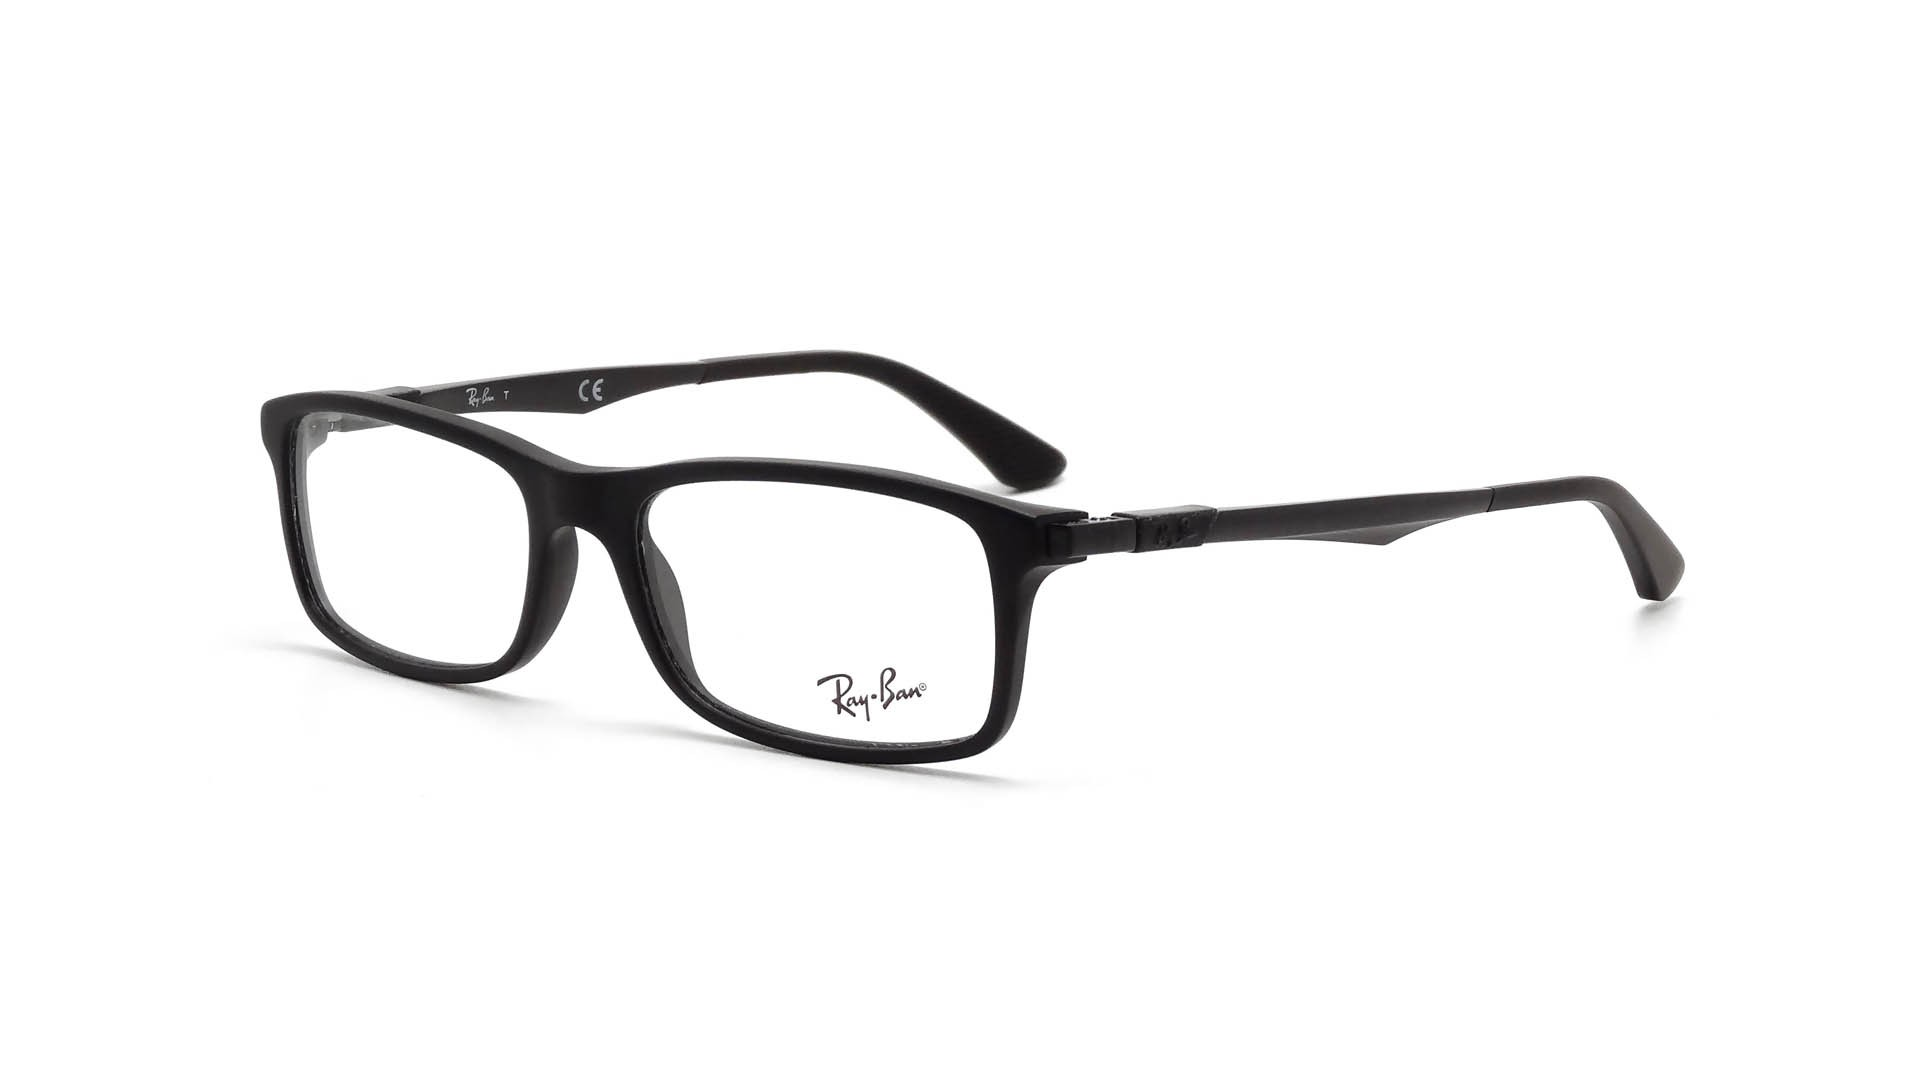 993c775480479 Eyeglasses Ray-Ban RX7017 RB7017 5196 54-17 Black Medium